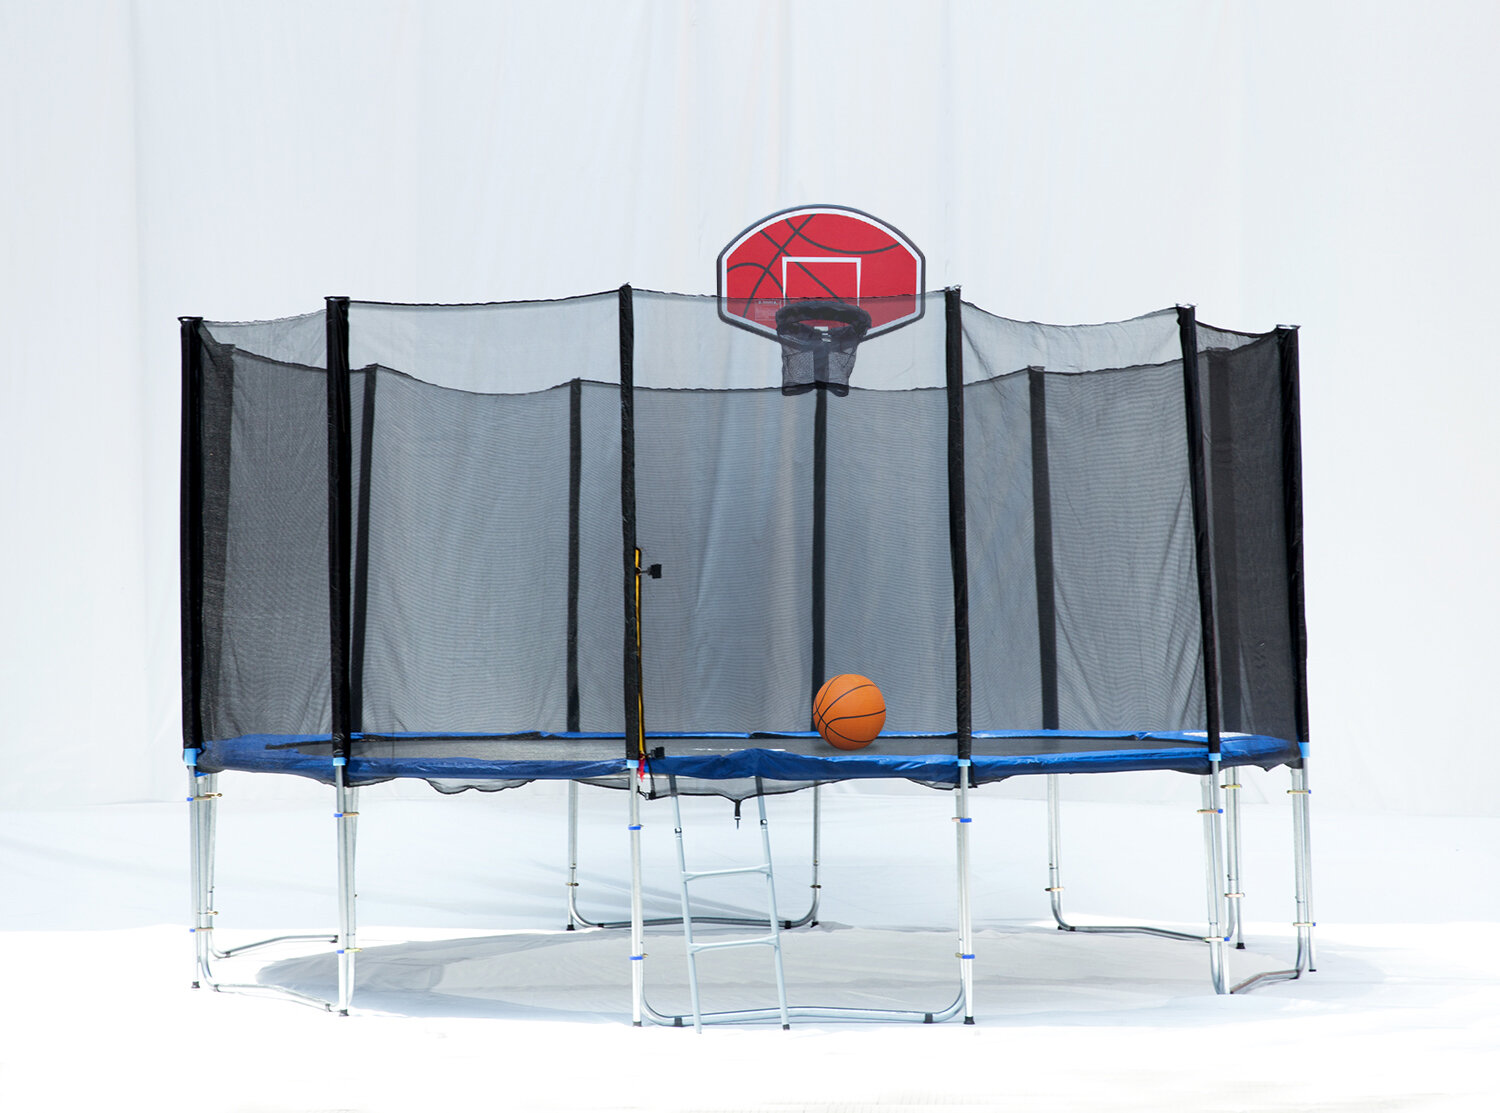 Exacme 16' Round Trampoline with Safety Enclosure Net and Basketball Hoop